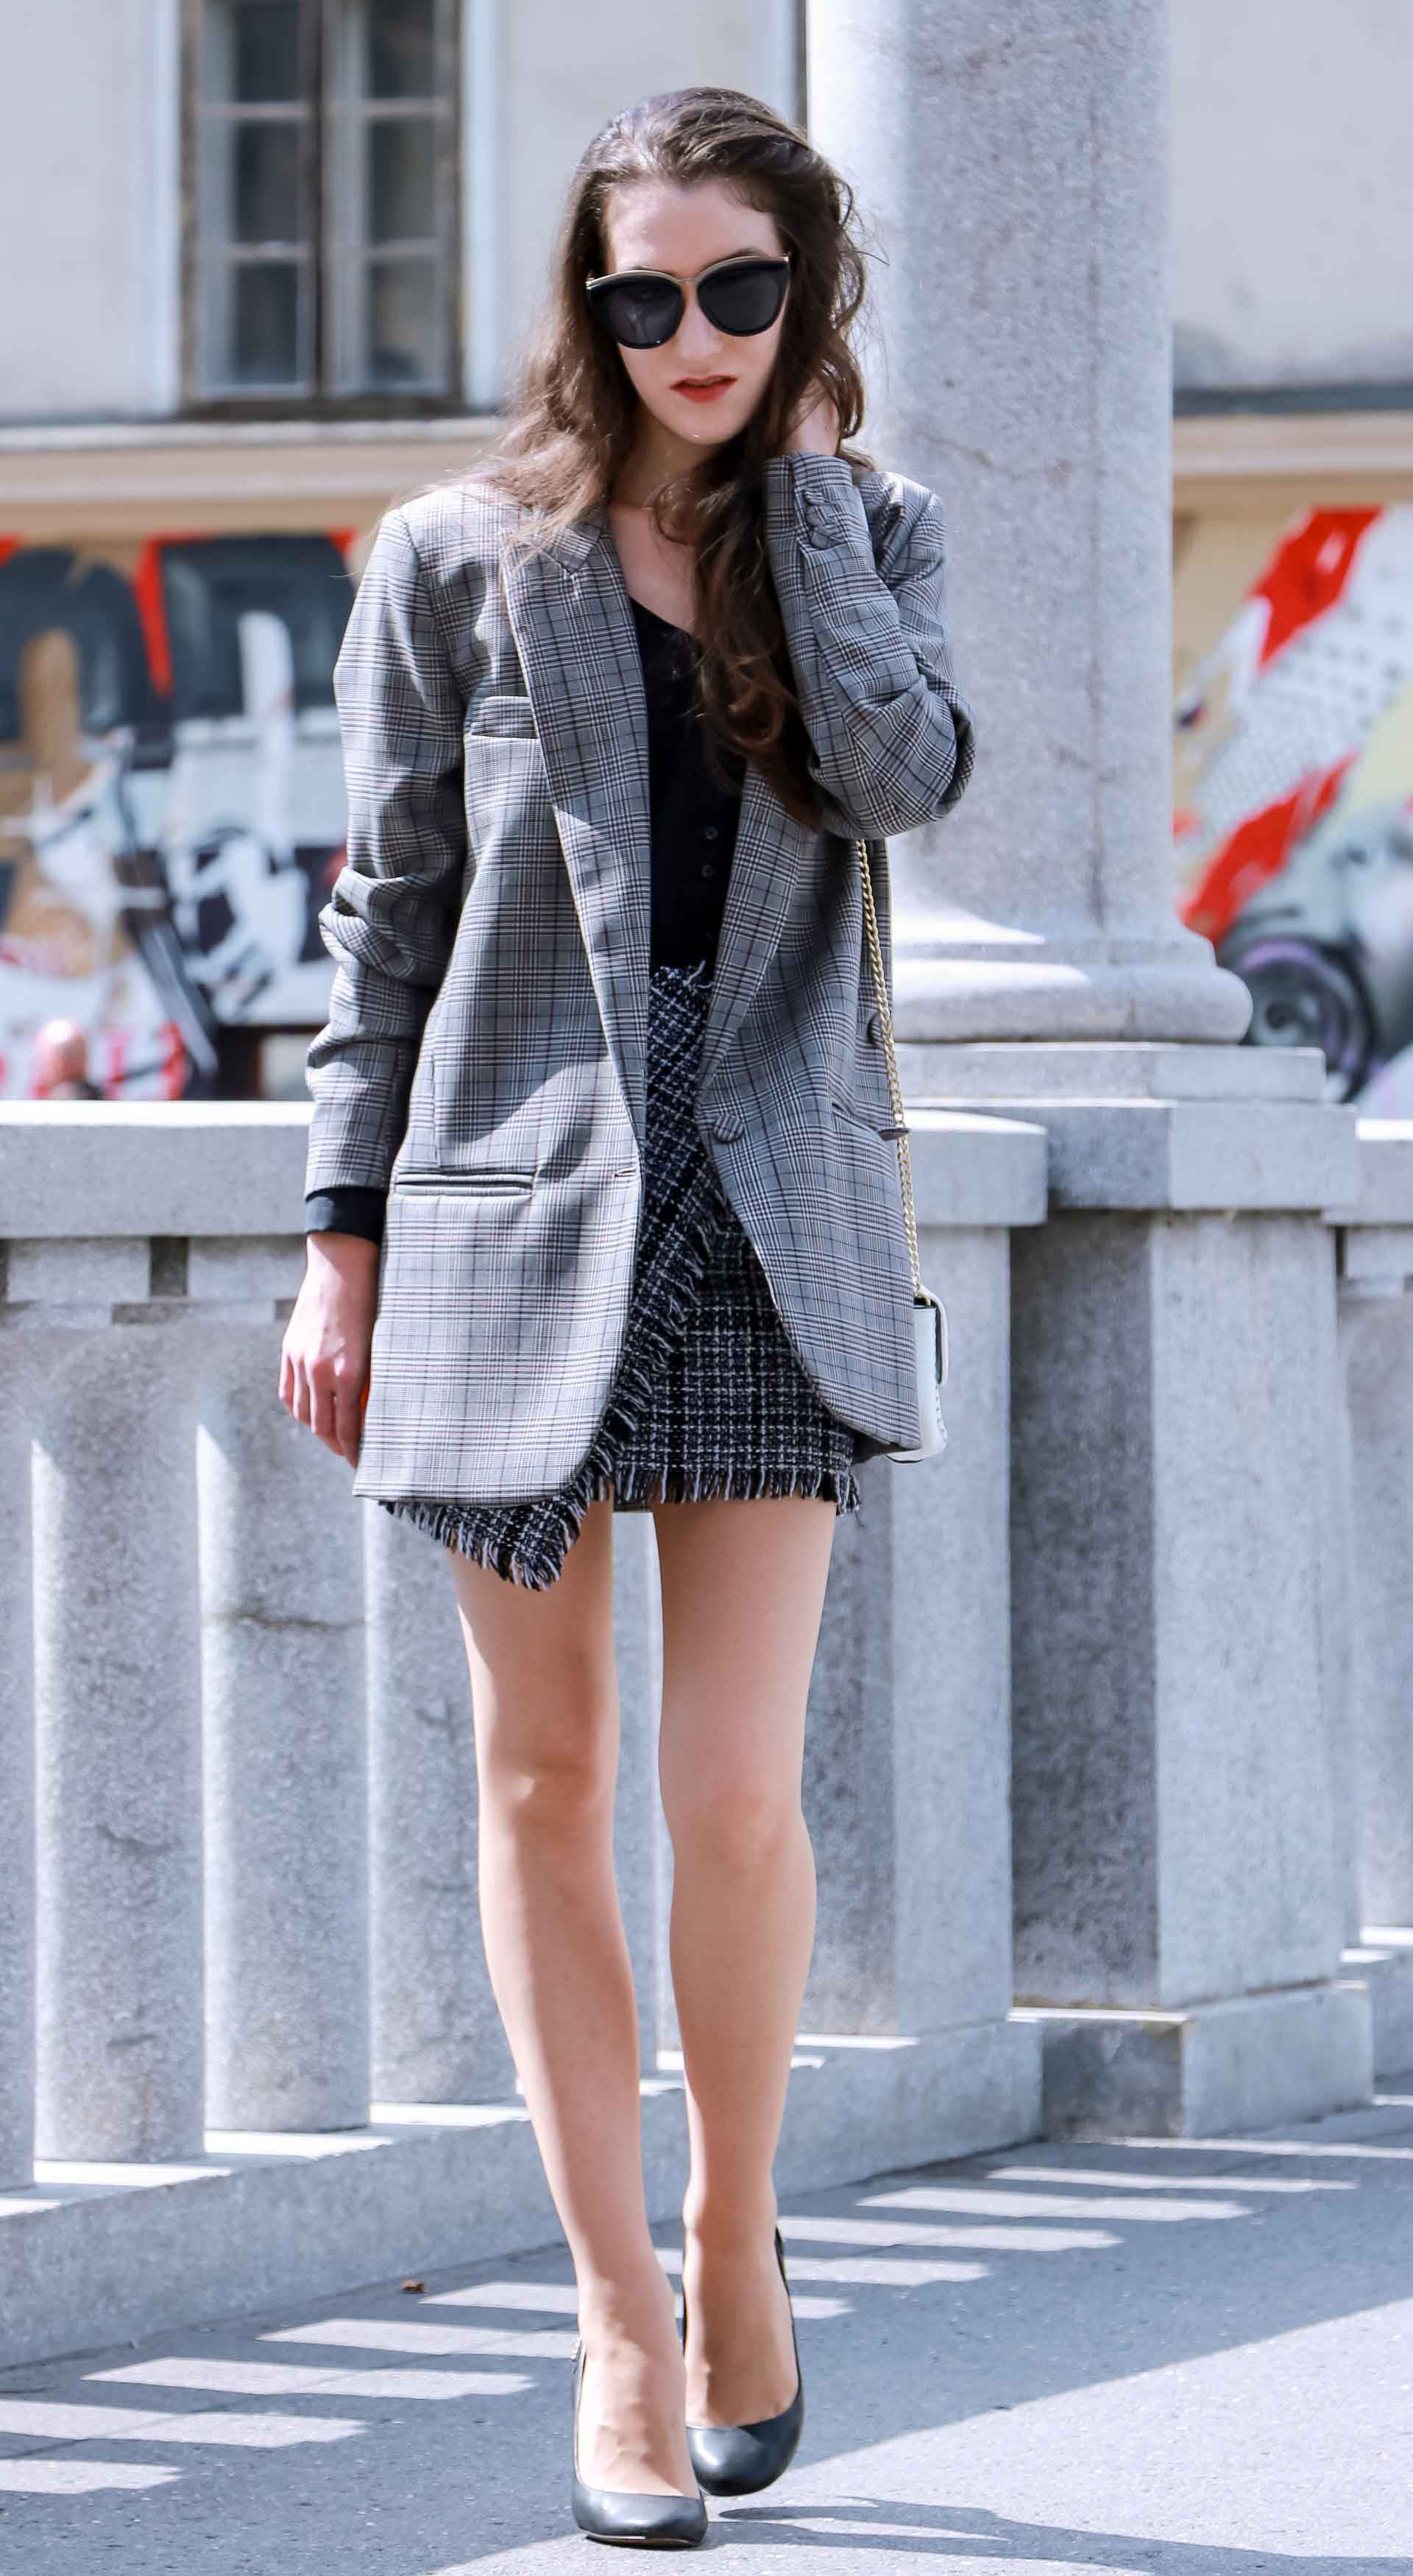 Fashion Blogger Veronika Lipar of Brunette from Wall Street dressed in Erika Cavallini oversized boyfriend checked blazer with short tweed black and white mini skirt from streets, black pumps and white chain strap shoulder bag while walking down the street in Ljubljana